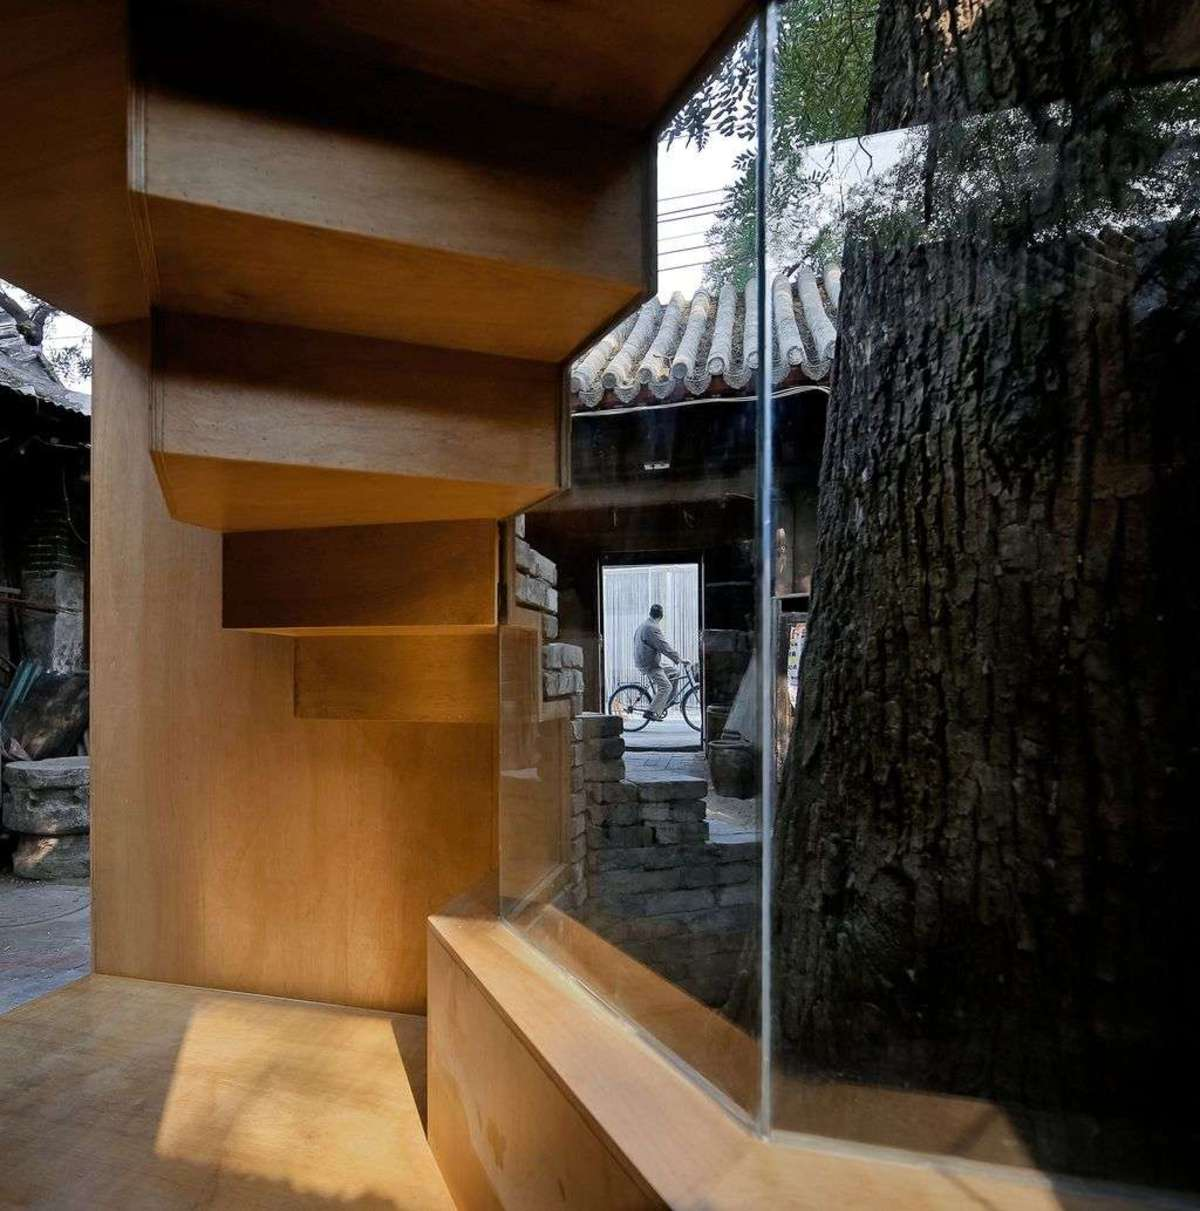 ZAO/standardarchitecture: Micro-Yuan'er in a hutong in Beijing